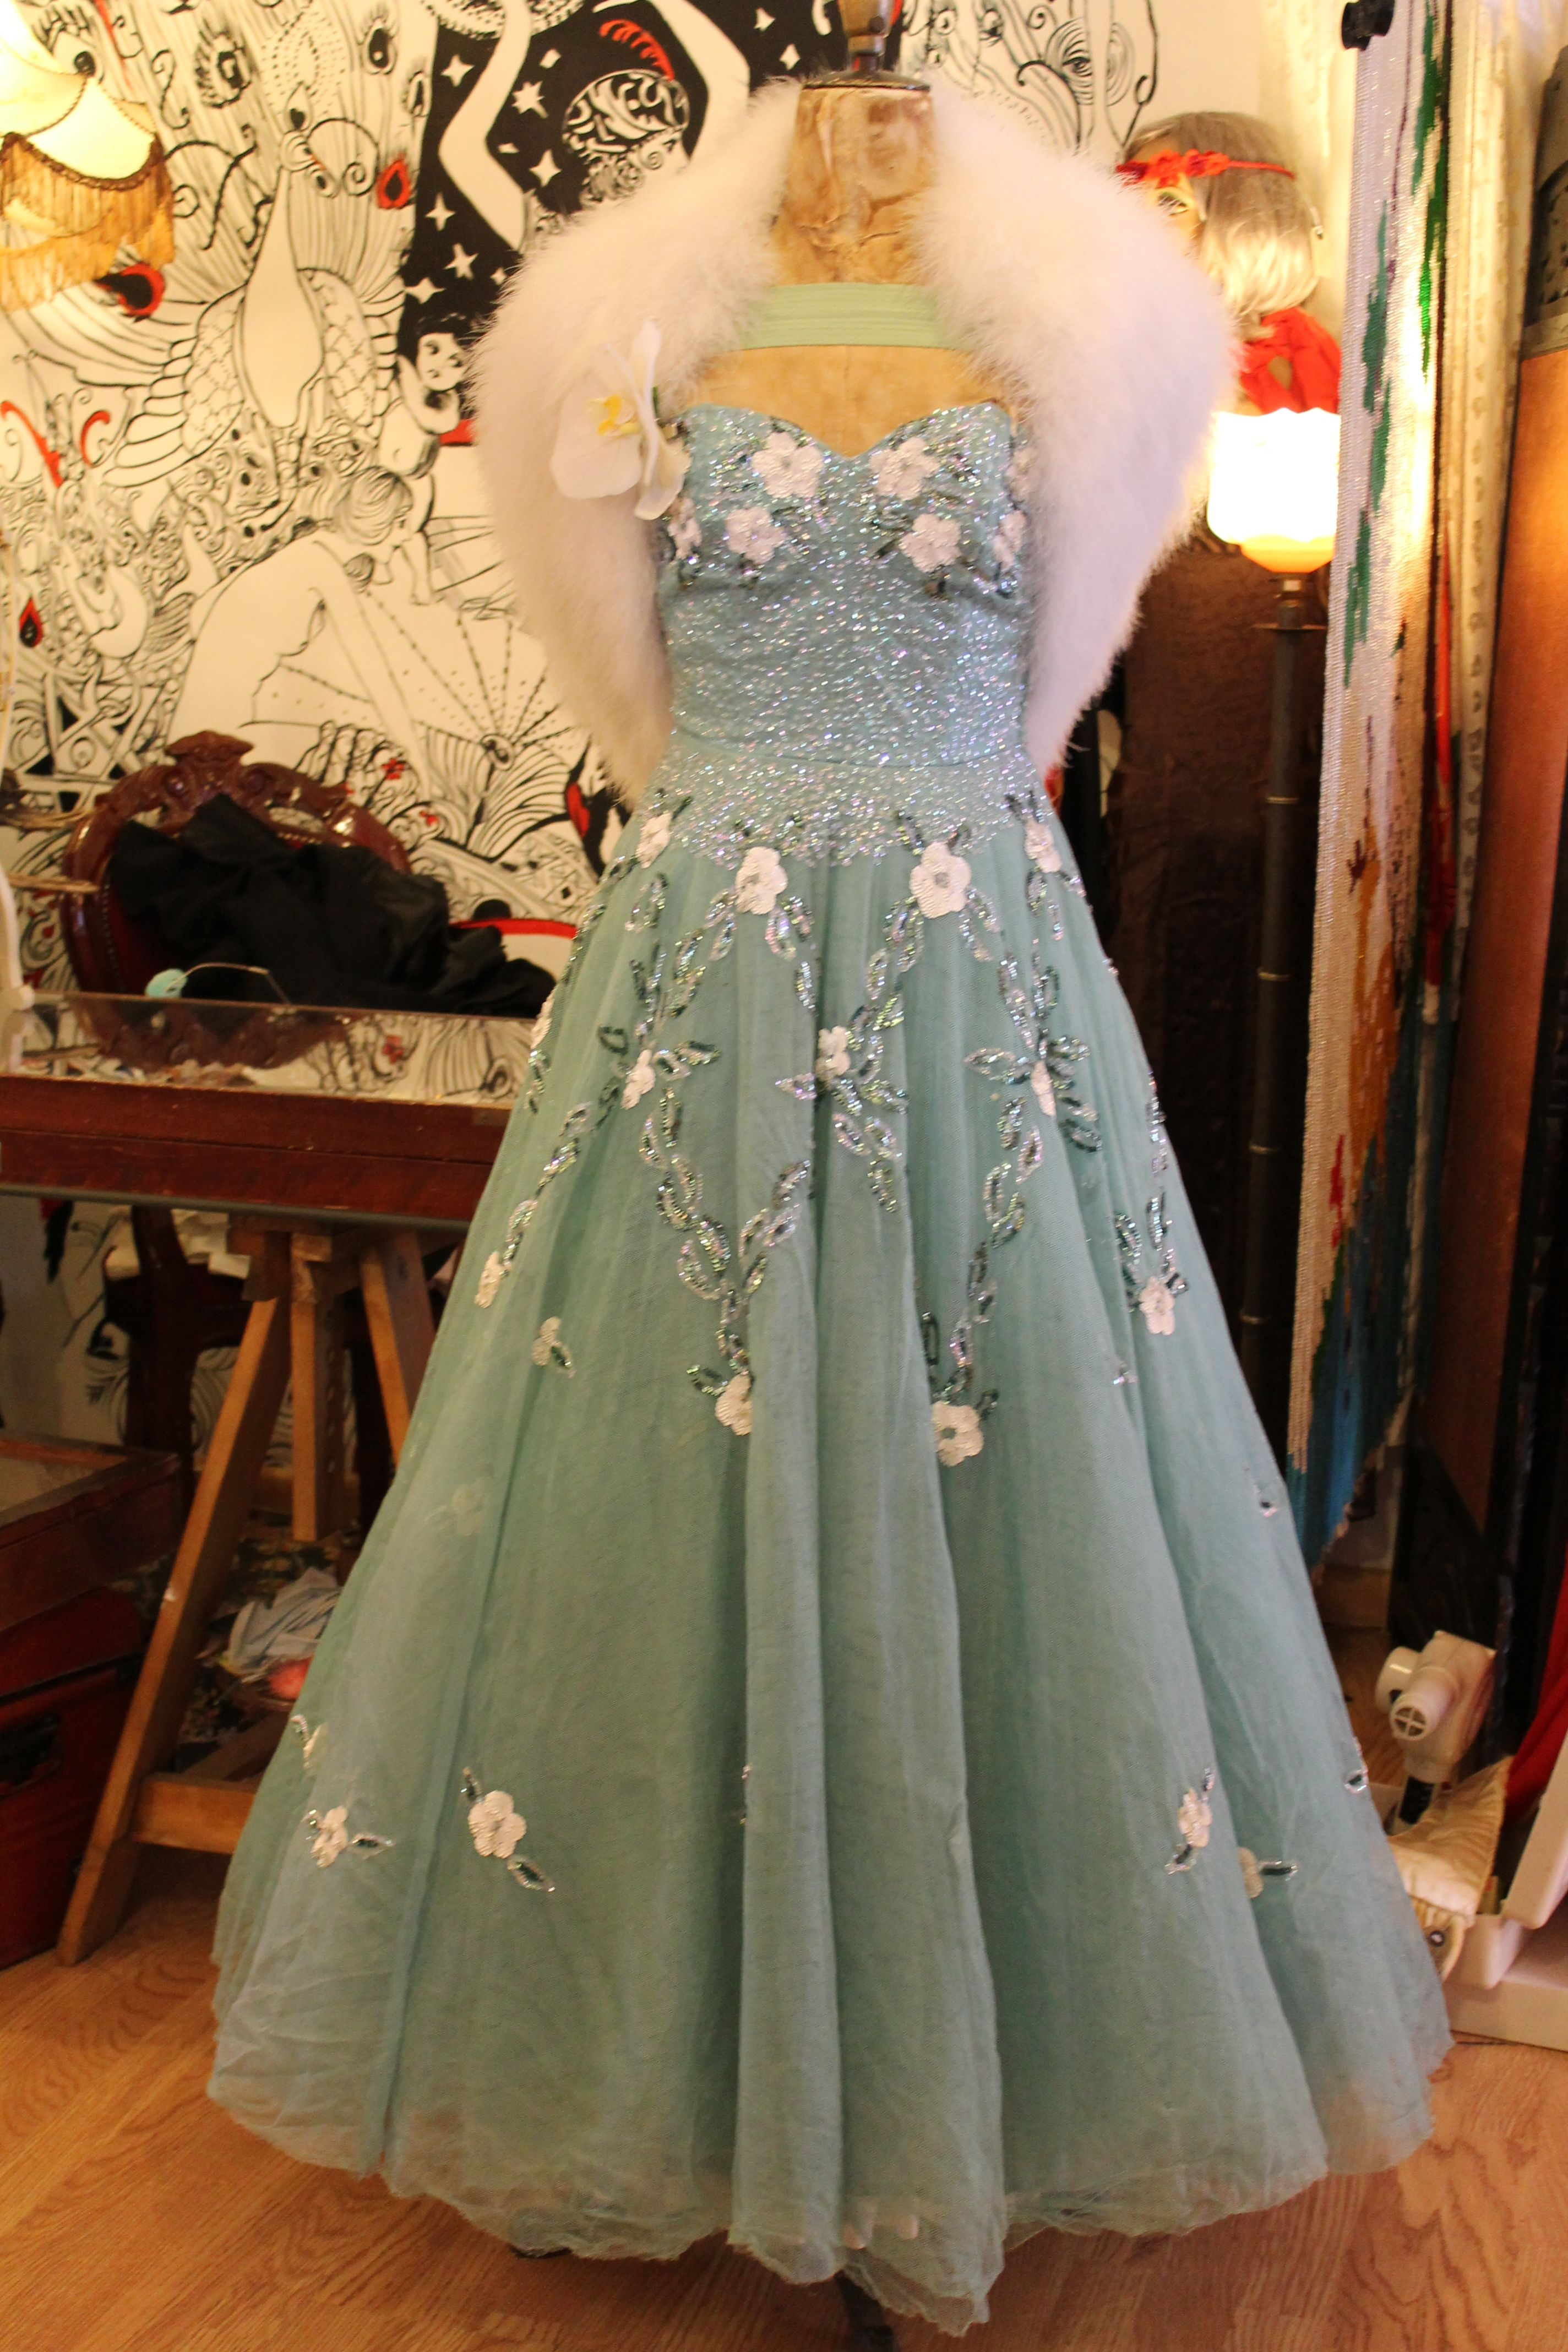 1940s Net Ball Party Prom Dress For Sale In The Shop Vintage Inspired Outfits Prom Dresses For Sale Dresses [ 4272 x 2848 Pixel ]